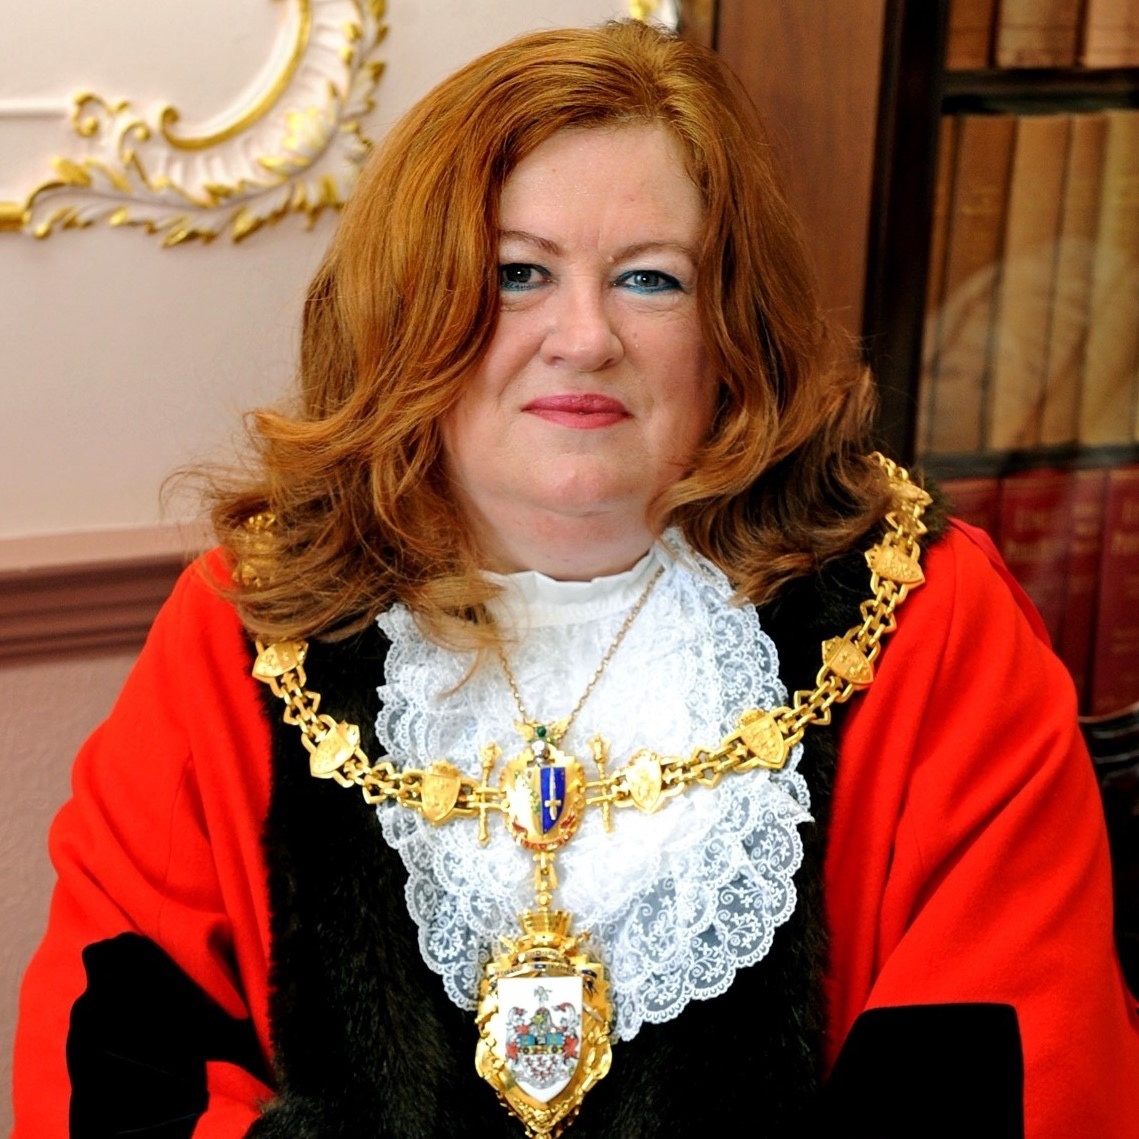 mayor-2019-0-cllr-wendy-johnson-2020